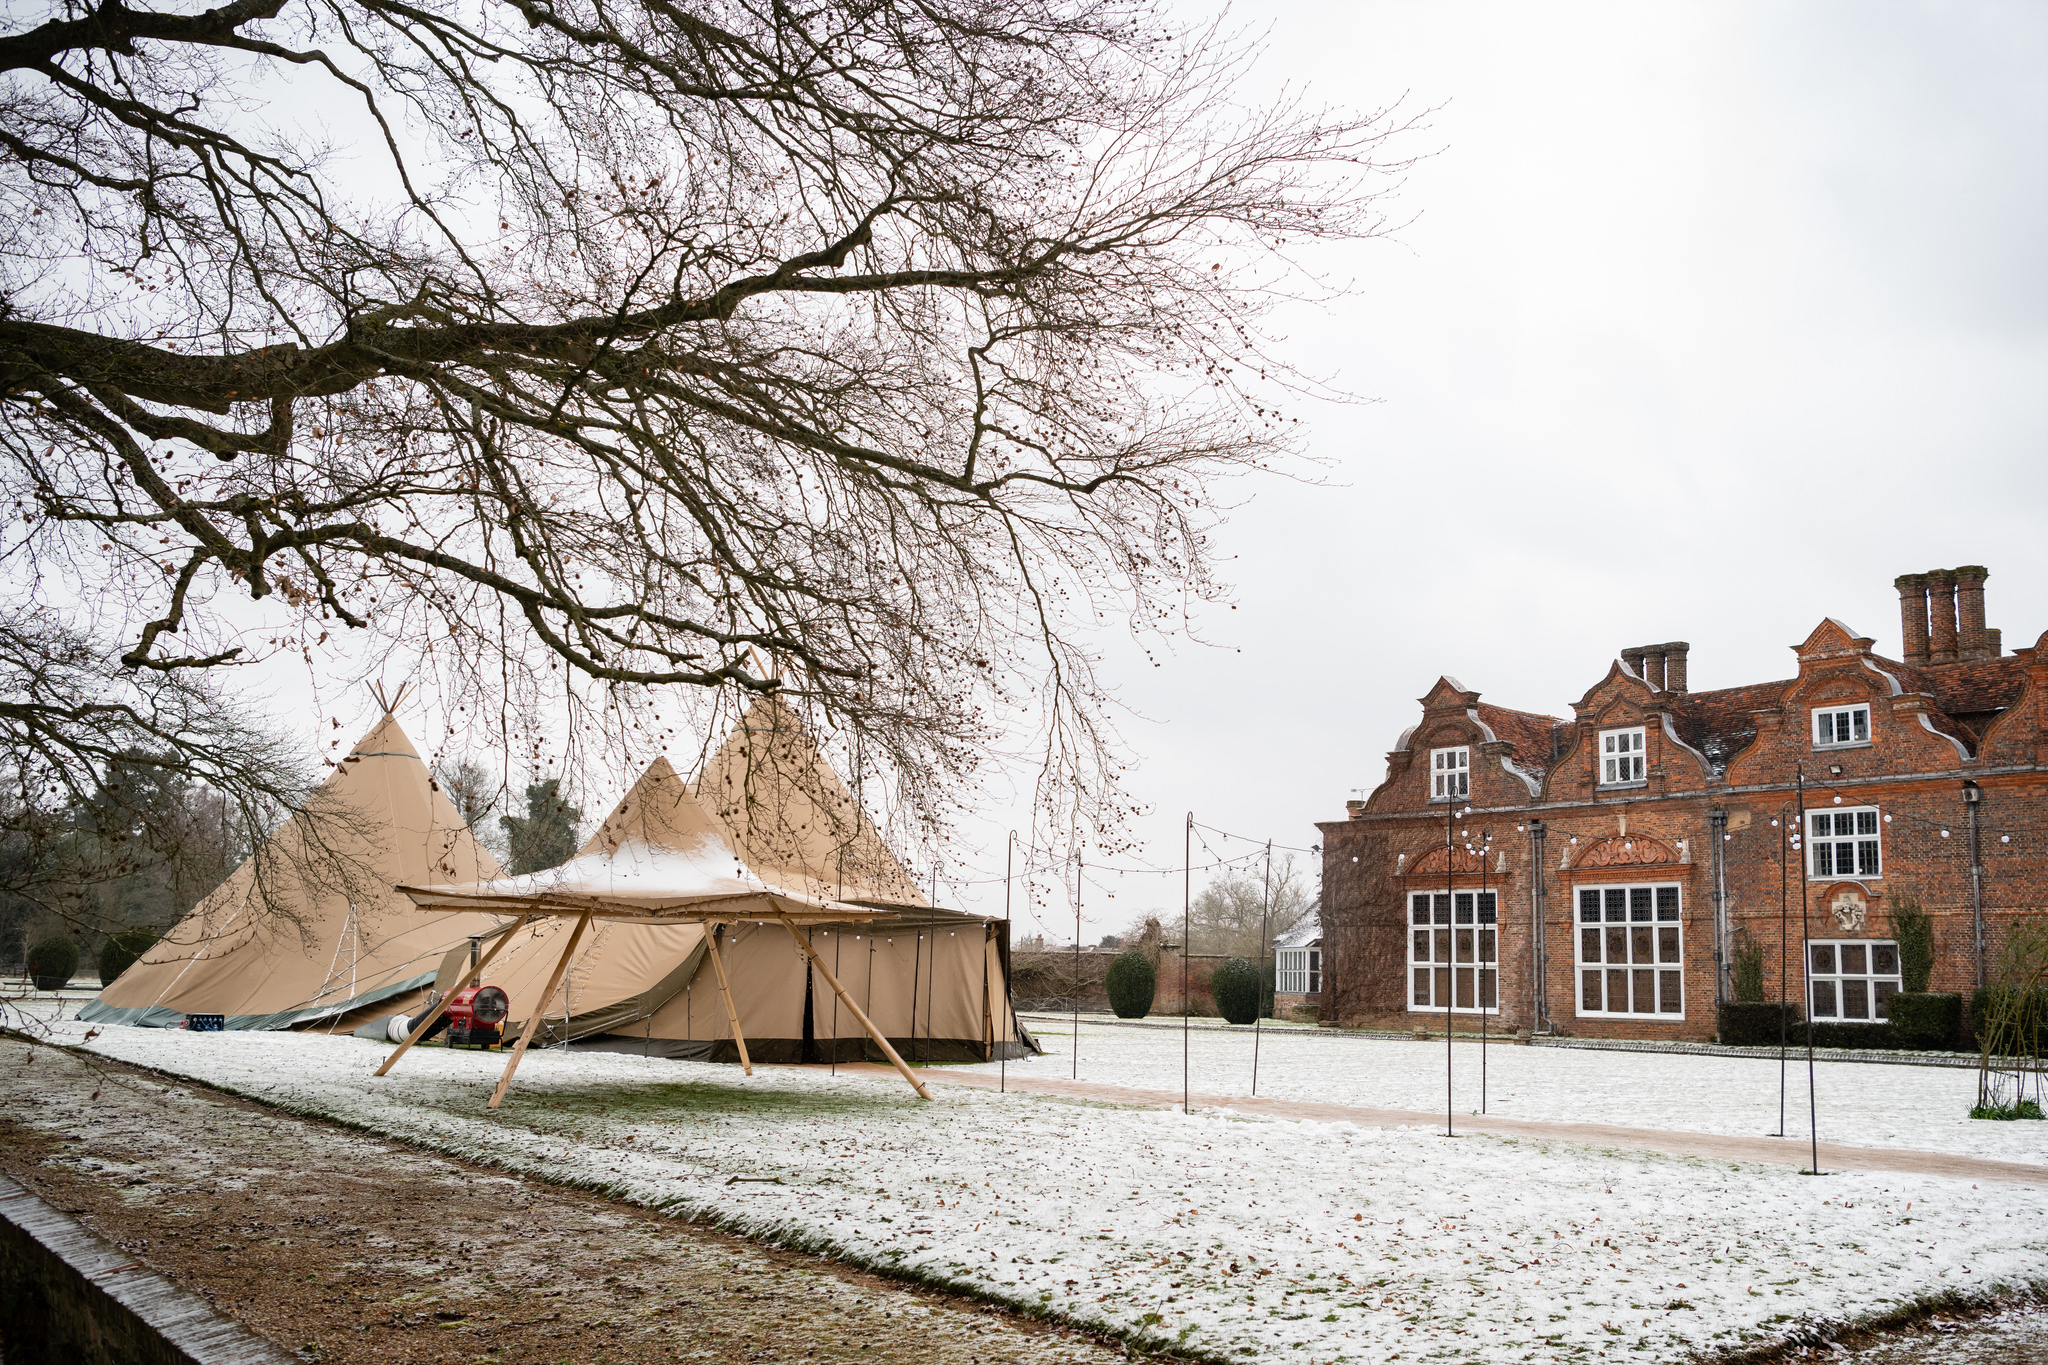 Tipi at Rothamsted Manor in the snow